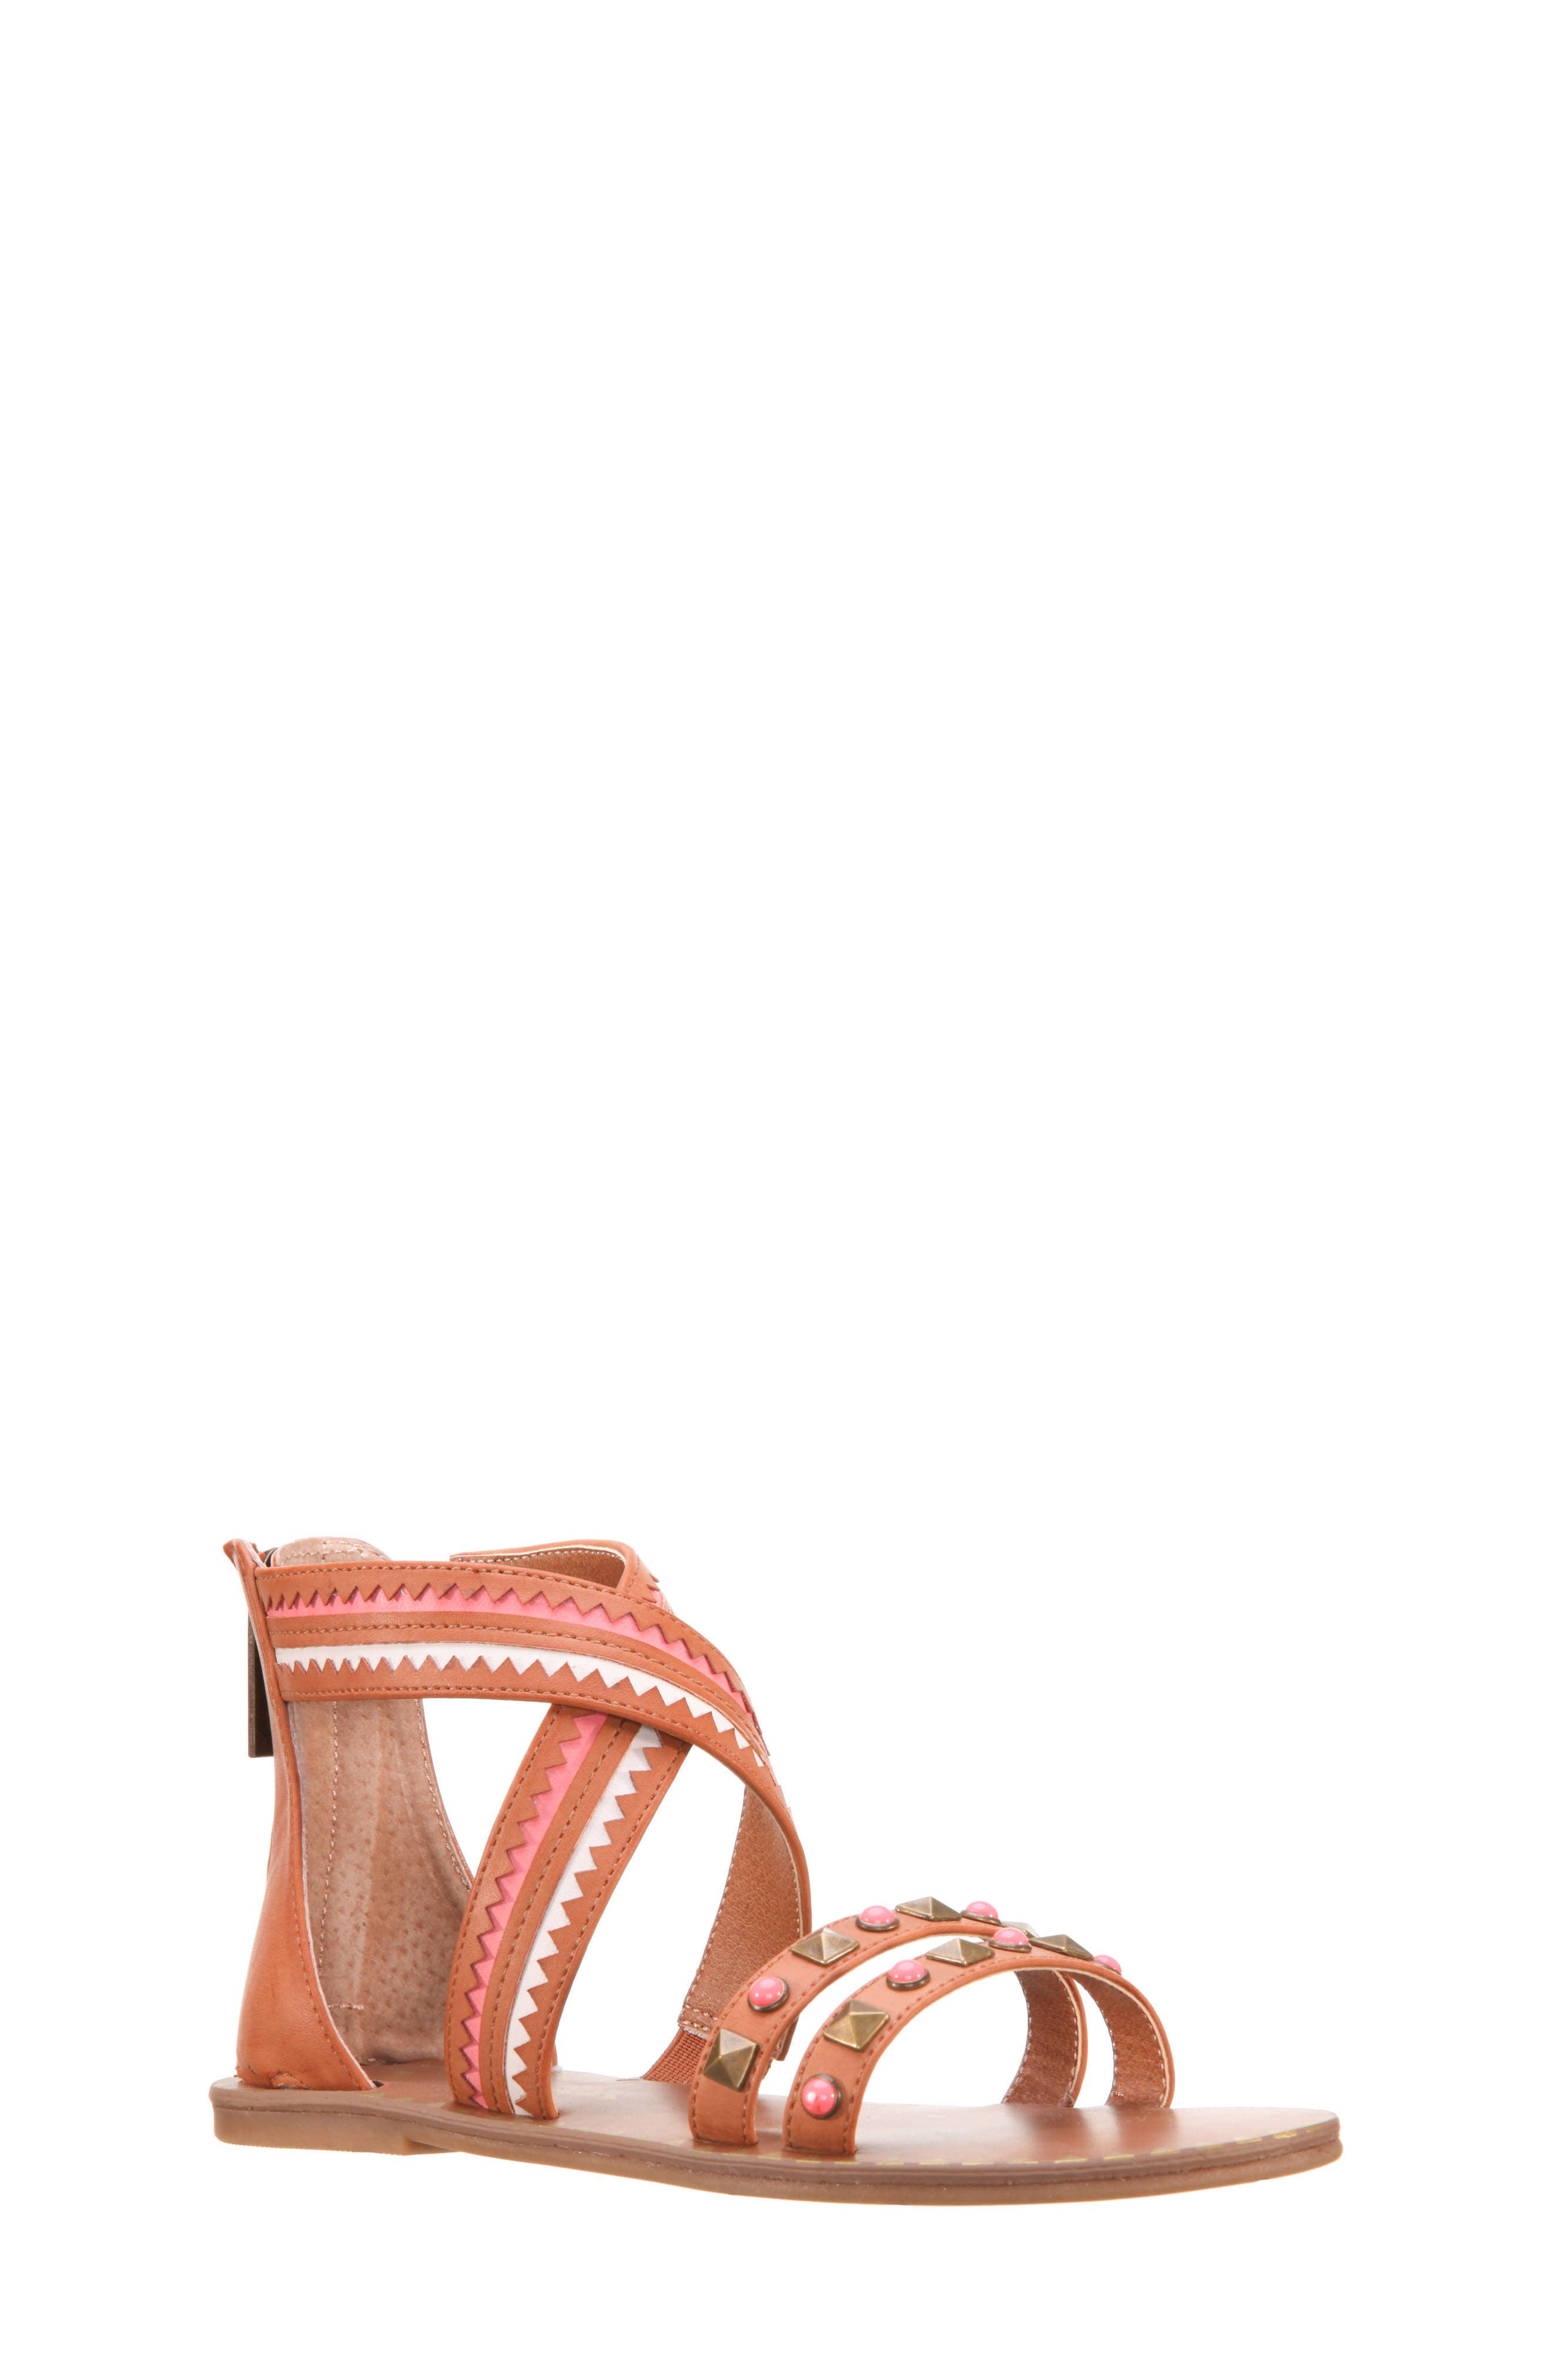 Phelisha Embellished Gladiator Sandal,                             Main thumbnail 1, color,                             Tan Burnished